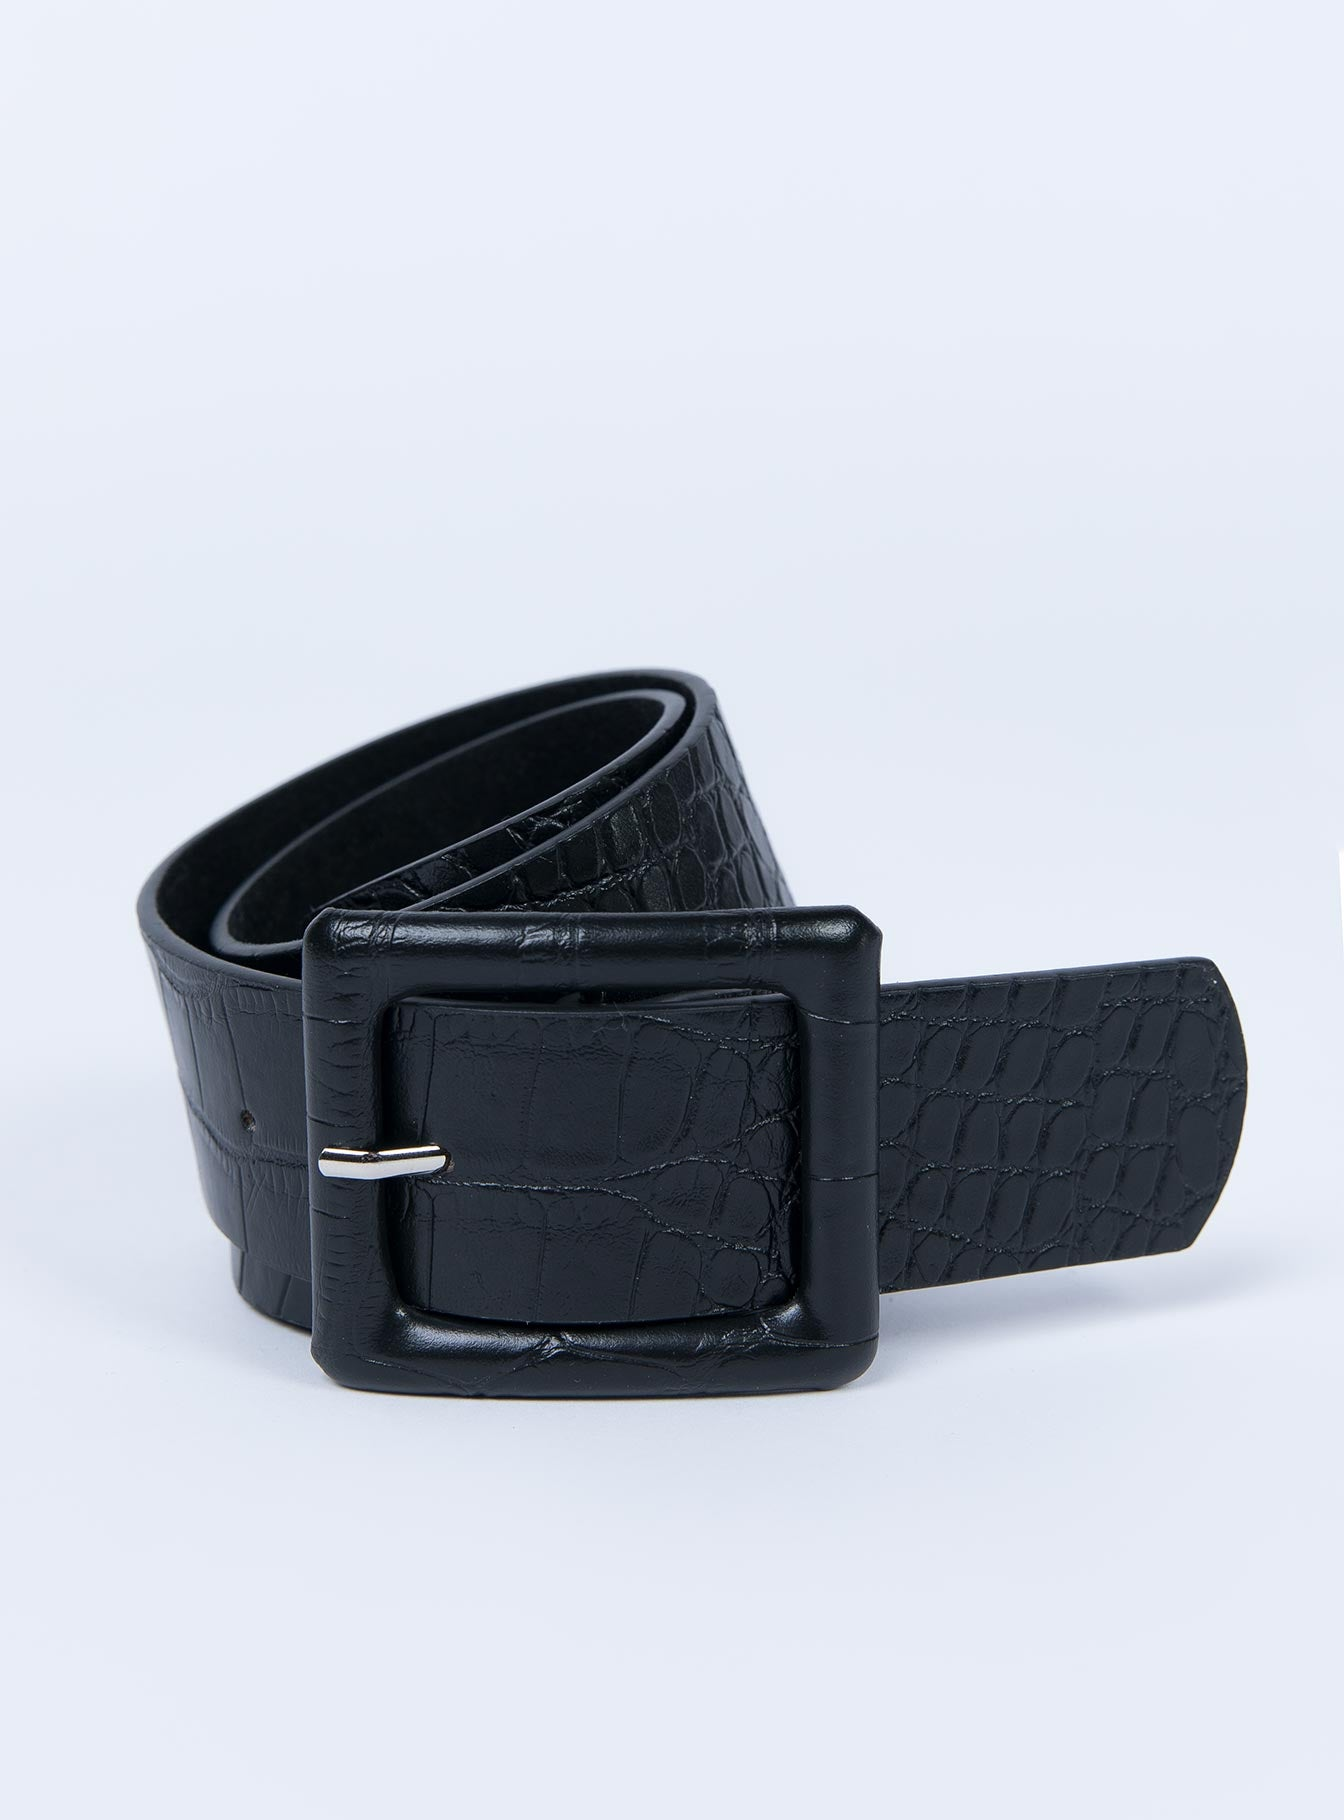 Jay Jones Belt Black